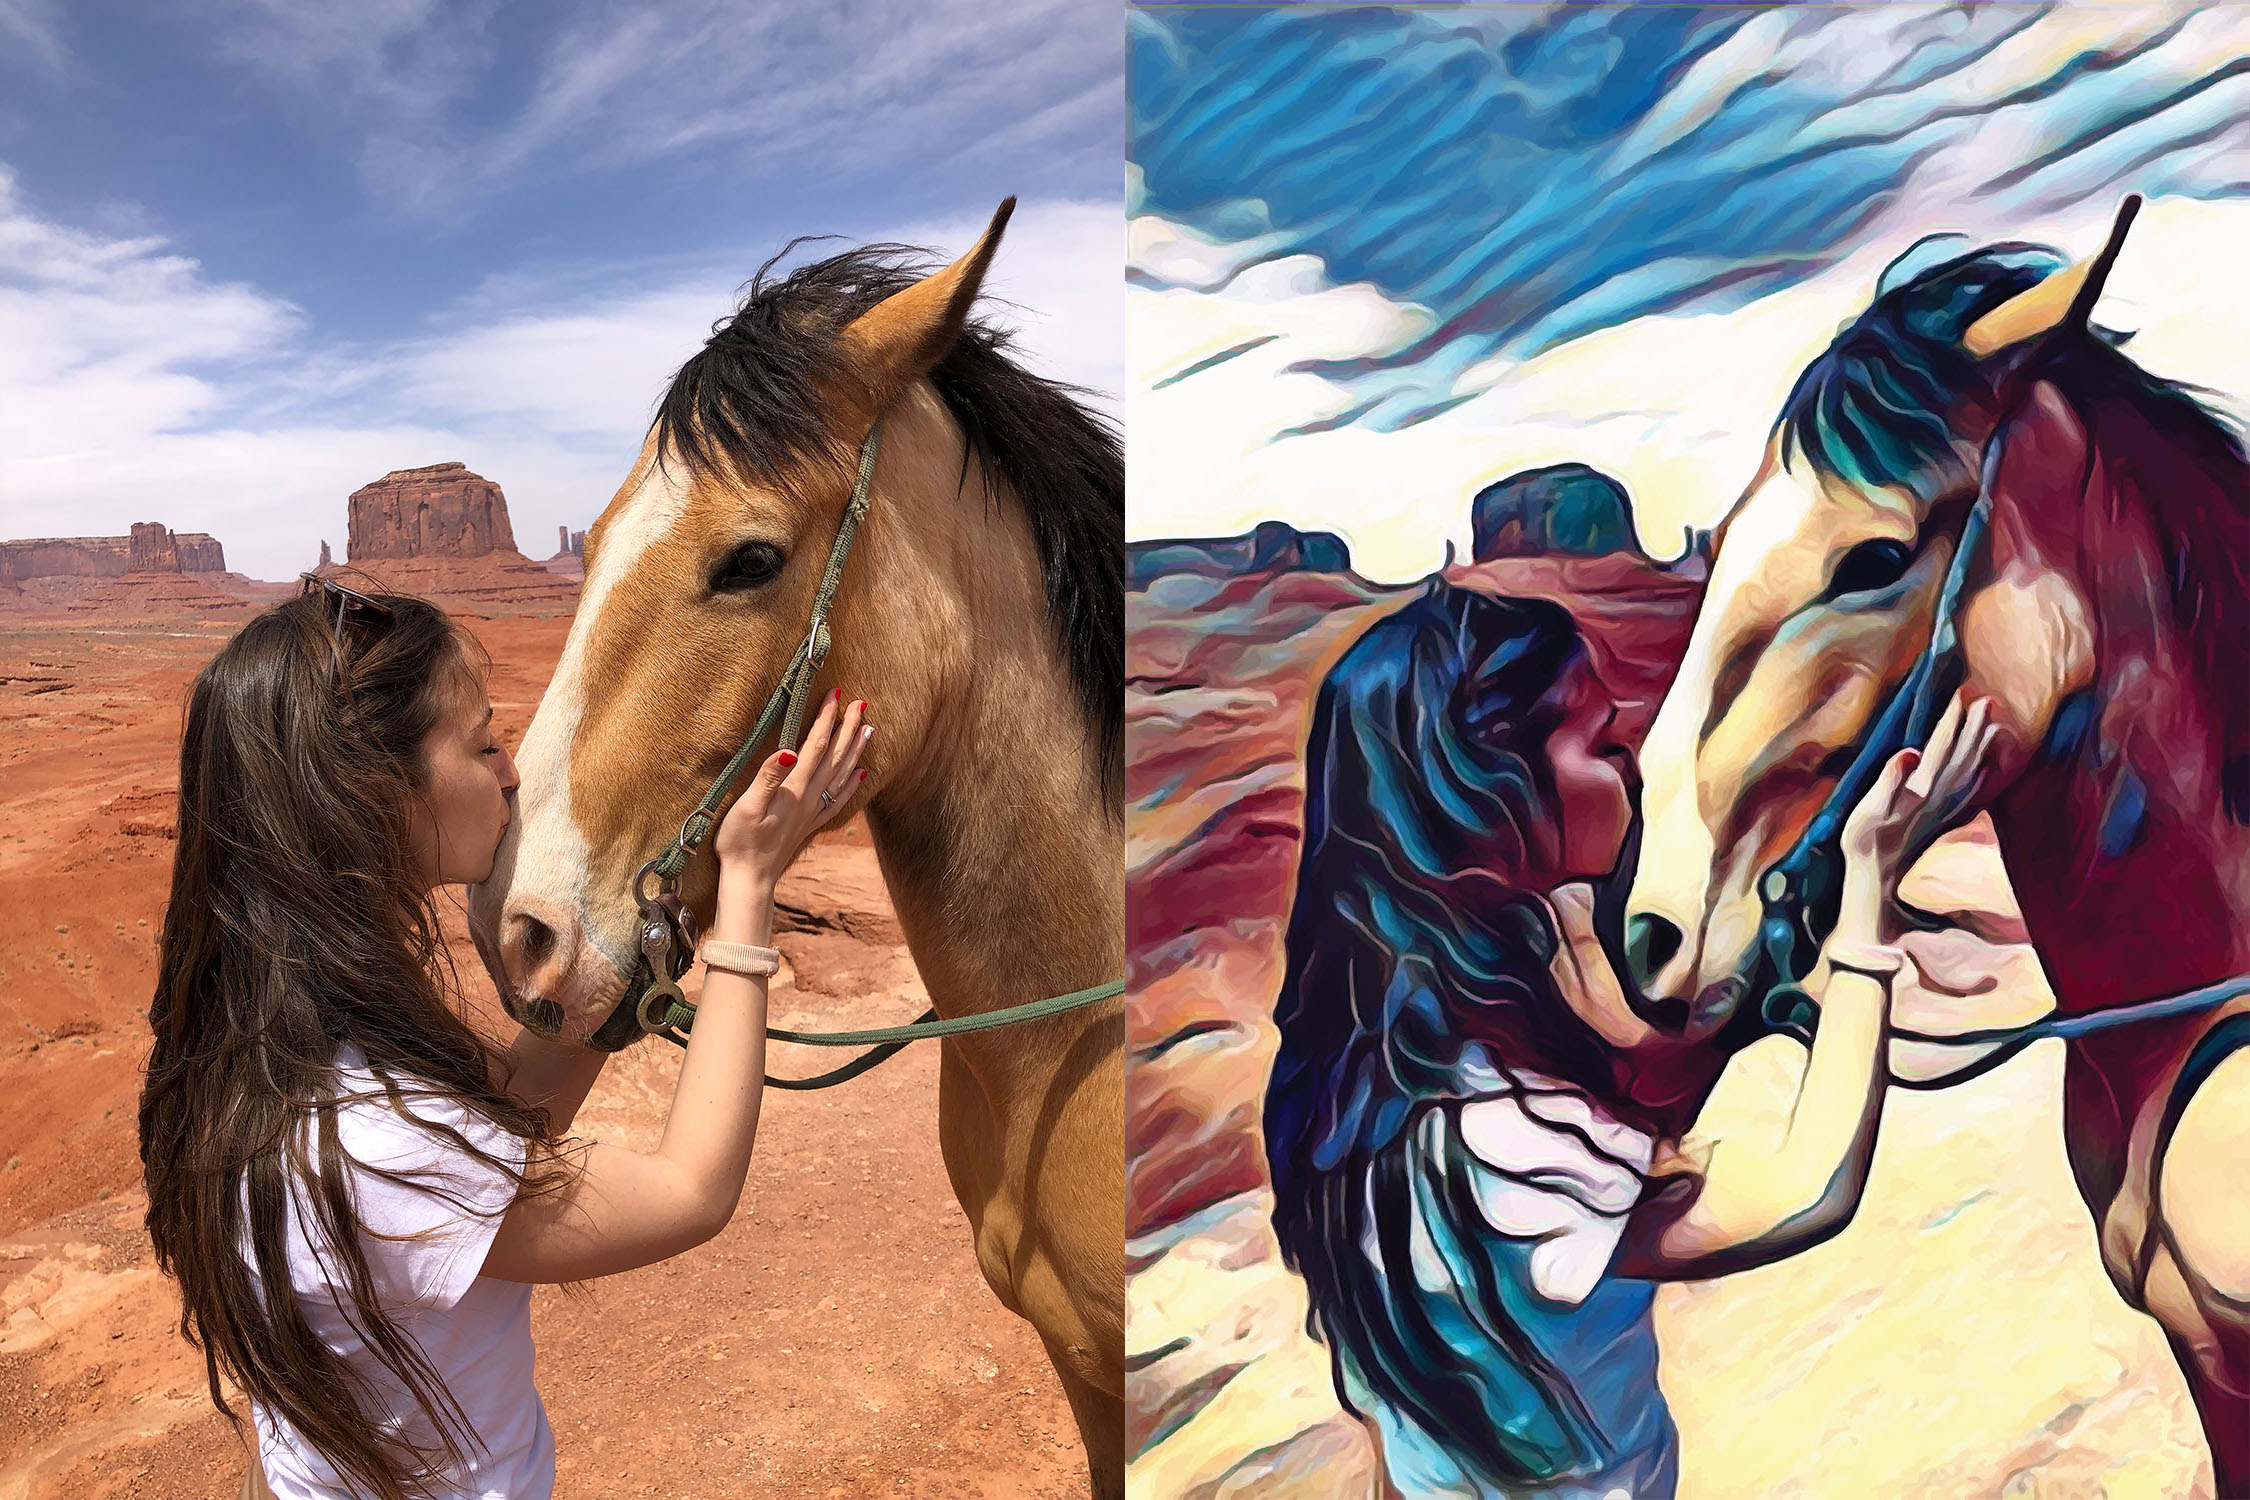 Before and after stylized Image of a woman kissing a horses nose.